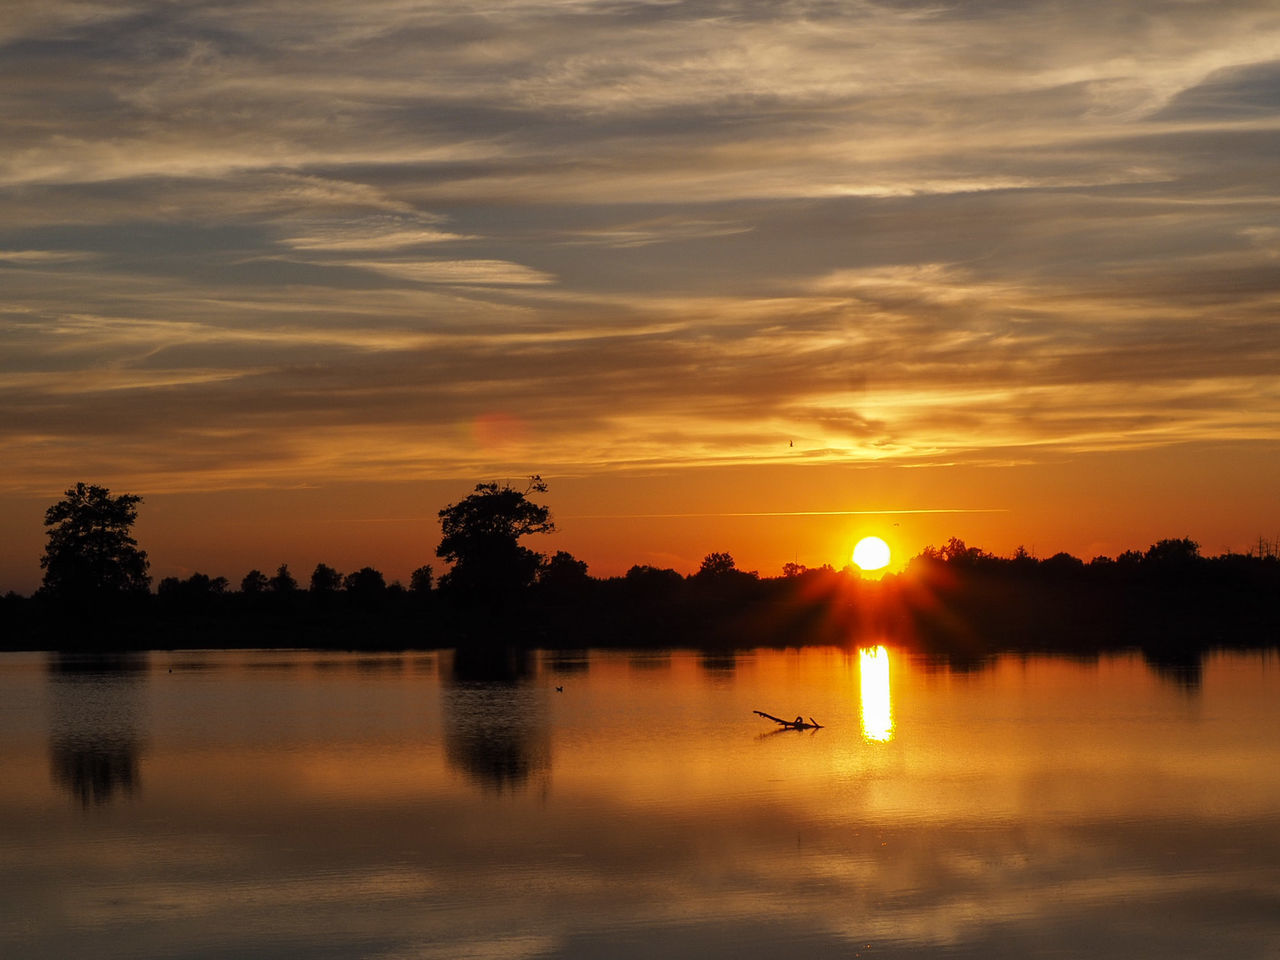 sunset, water, silhouette, beauty in nature, sky, tree, nature, orange color, scenics, tranquil scene, reflection, cloud - sky, tranquility, lake, sun, waterfront, no people, outdoors, nautical vessel, bird, swan, day